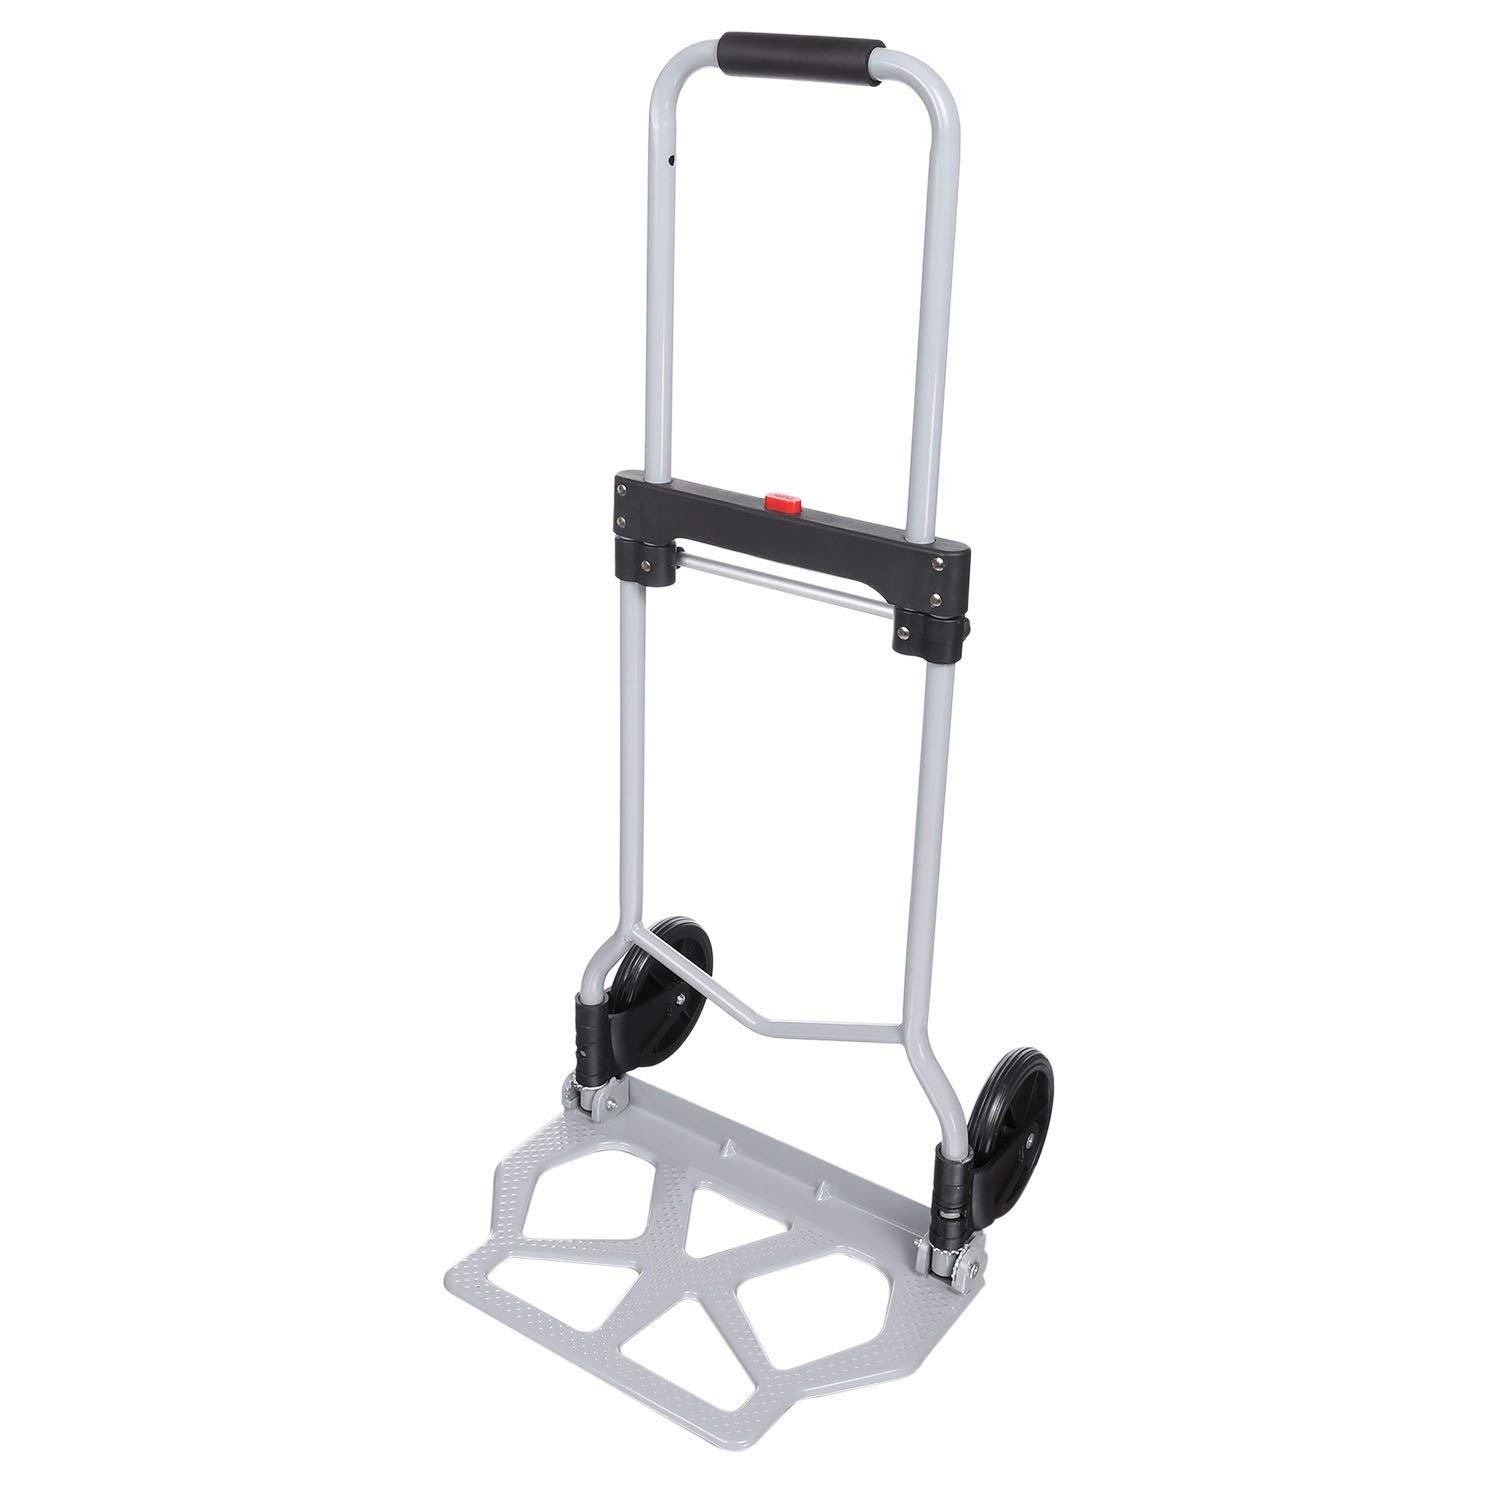 Iekofo Portable Folding Hand Truck Dolly Luggage Carts, 220LBS Heavy Duty Silver Aluminum Collapsible Cart (US Stock)